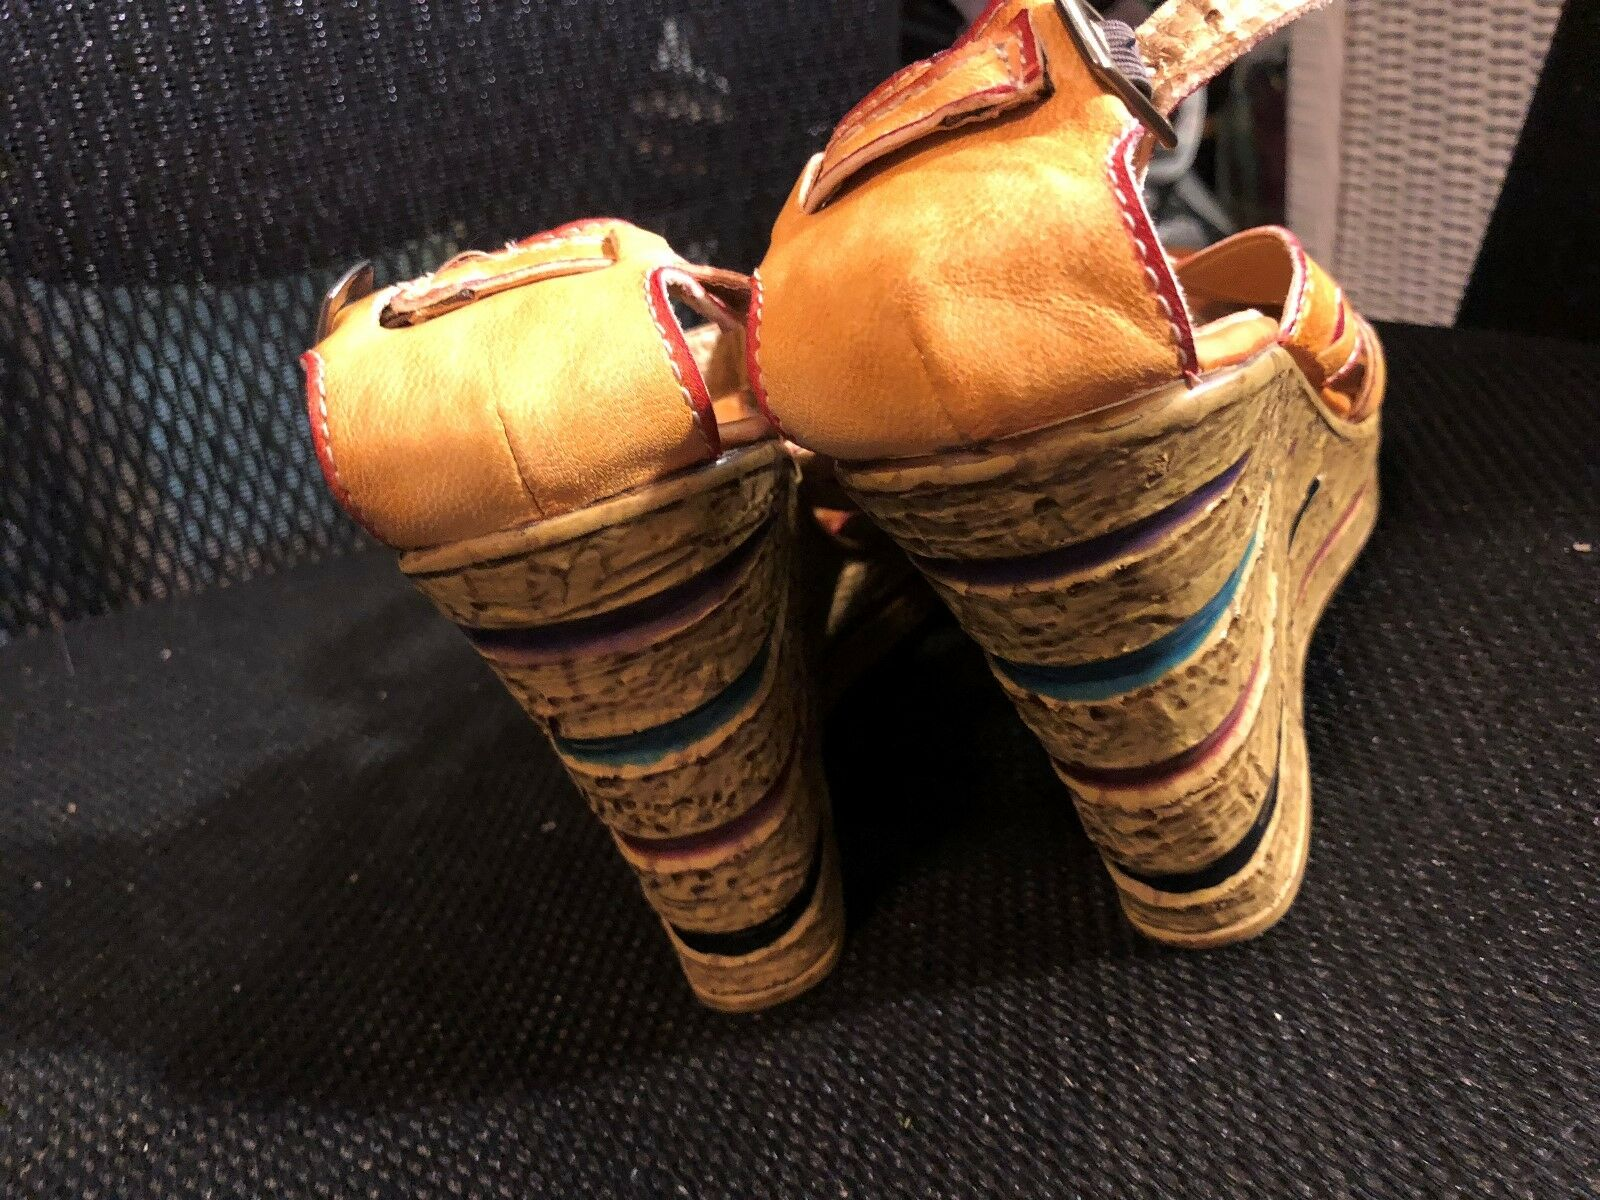 Sandals, ELITE by CORKUS, CORKUS, CORKUS, mustard, hints of lime green, red, 4  wedge,7 1 2M 7a88c9